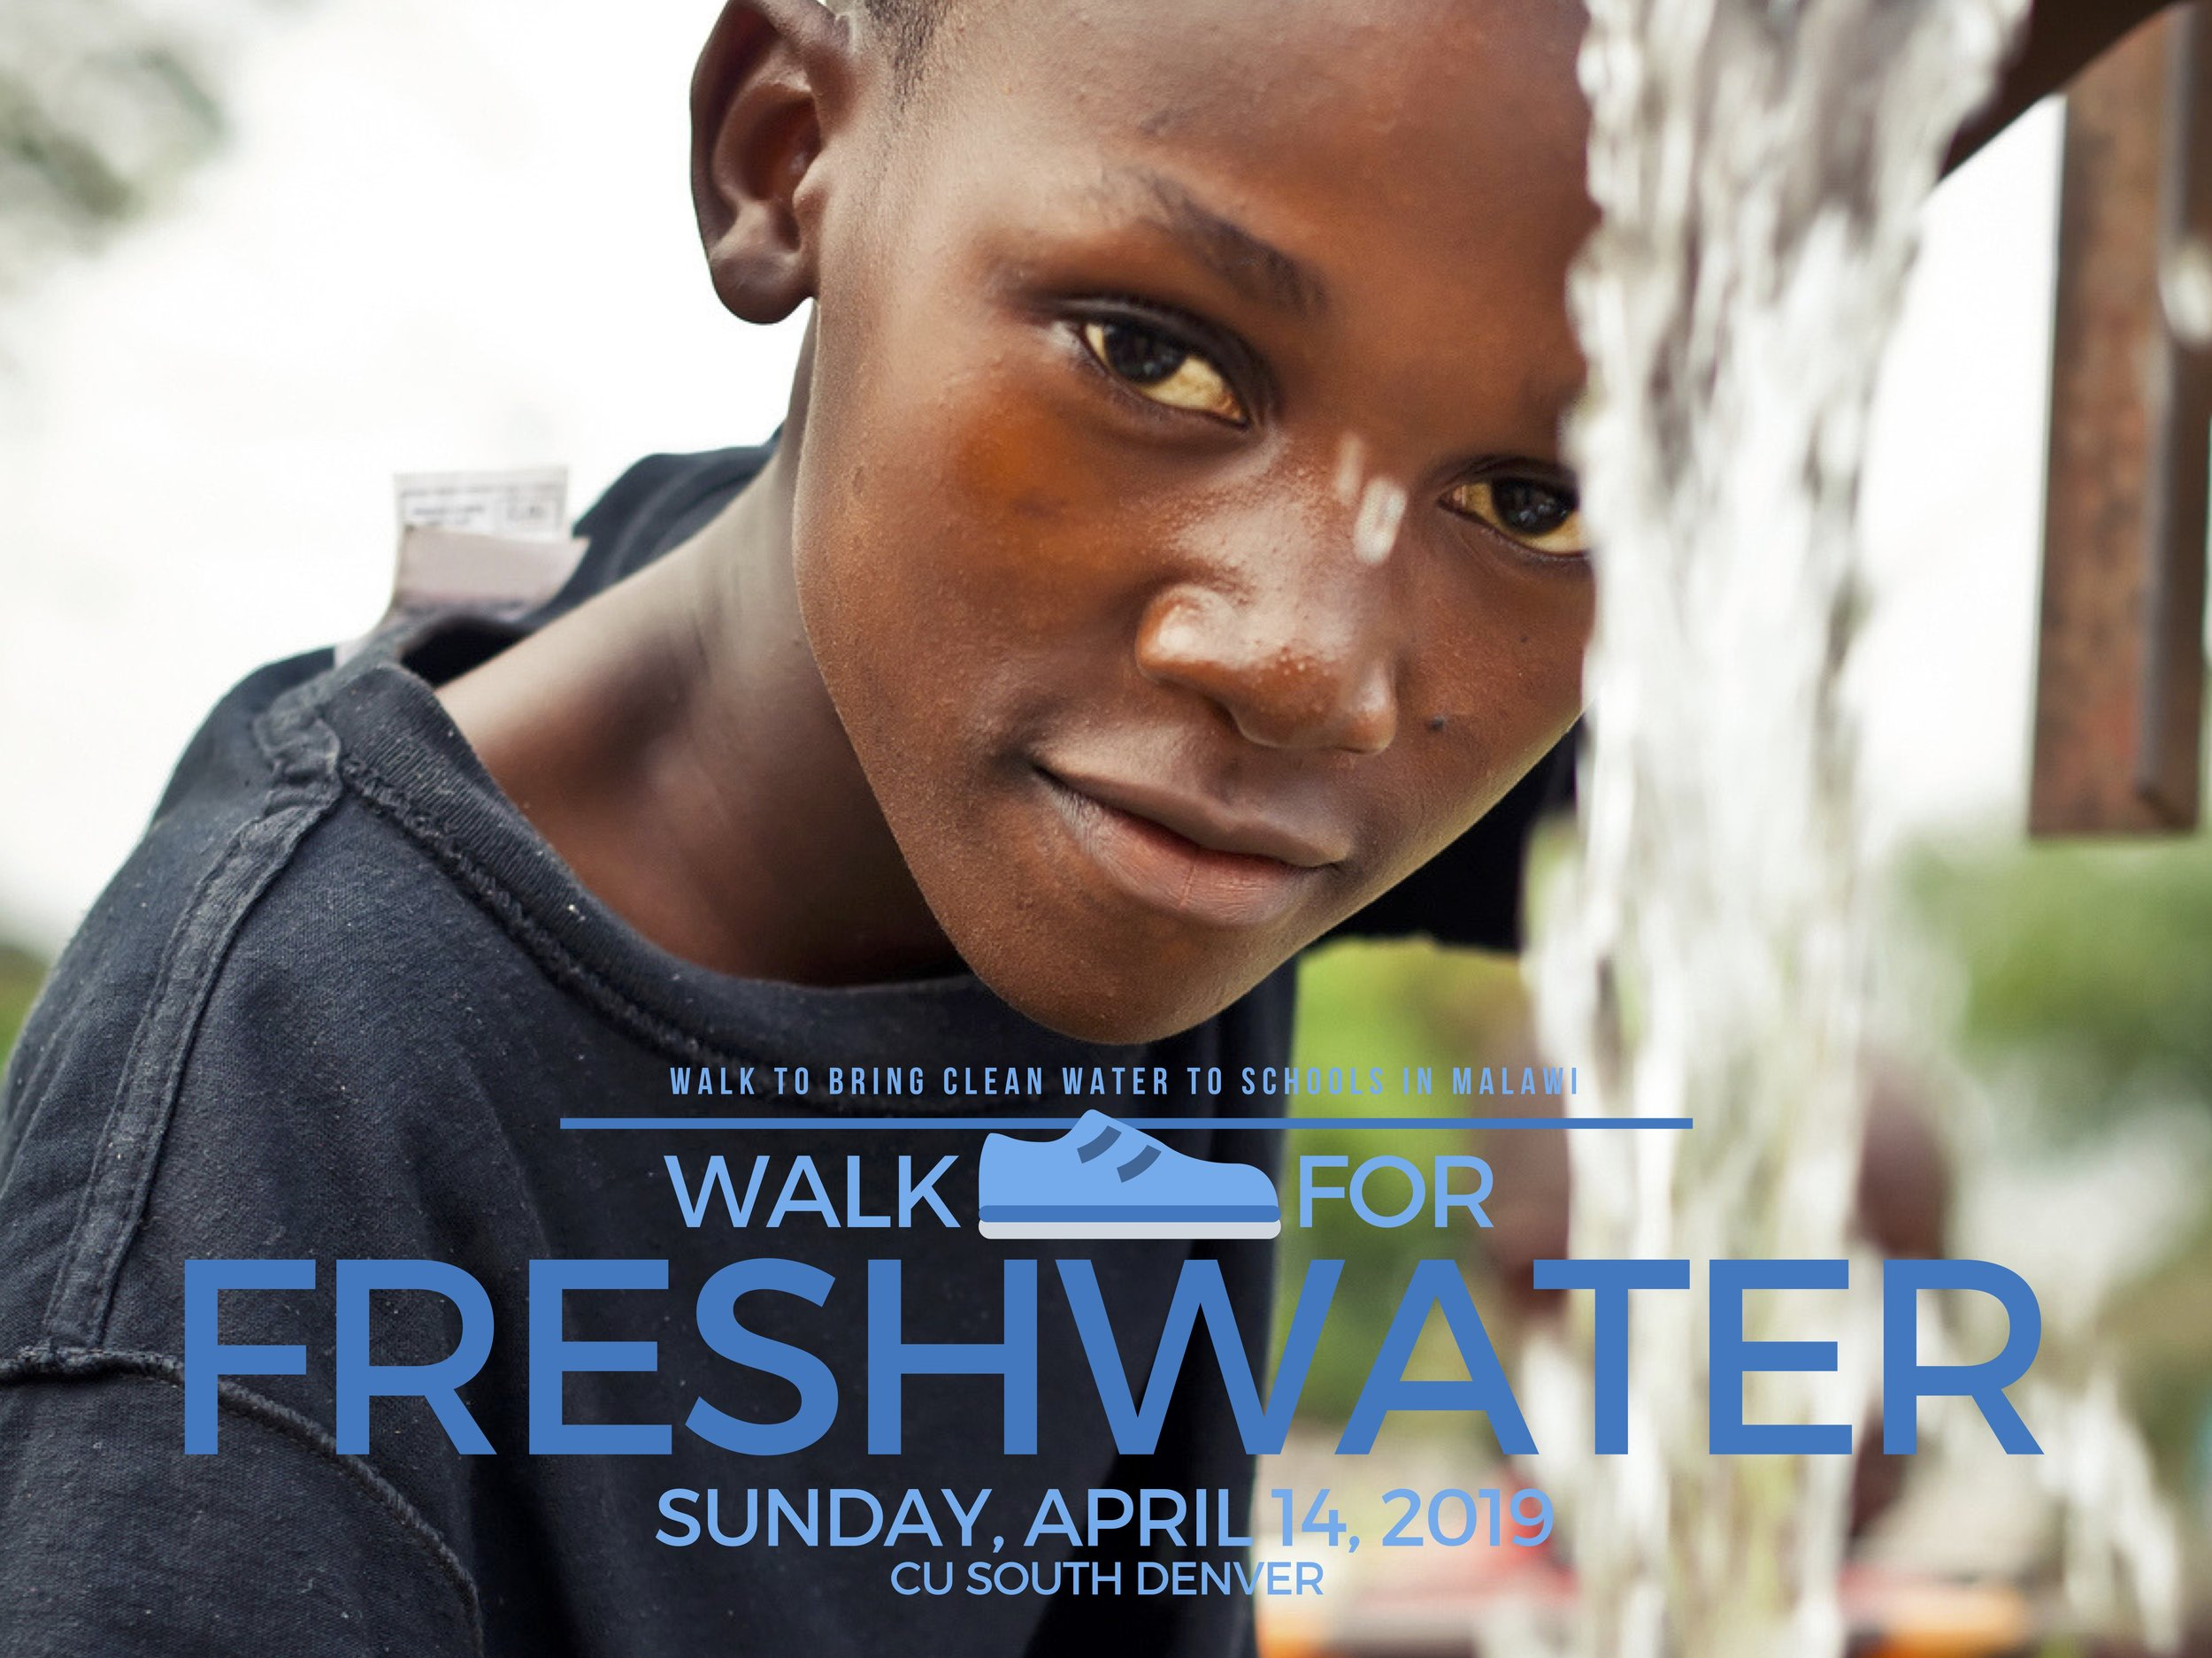 WALK TO BRING CLEAN WATER TO SCHOOLS IN MALAW-9.jpg